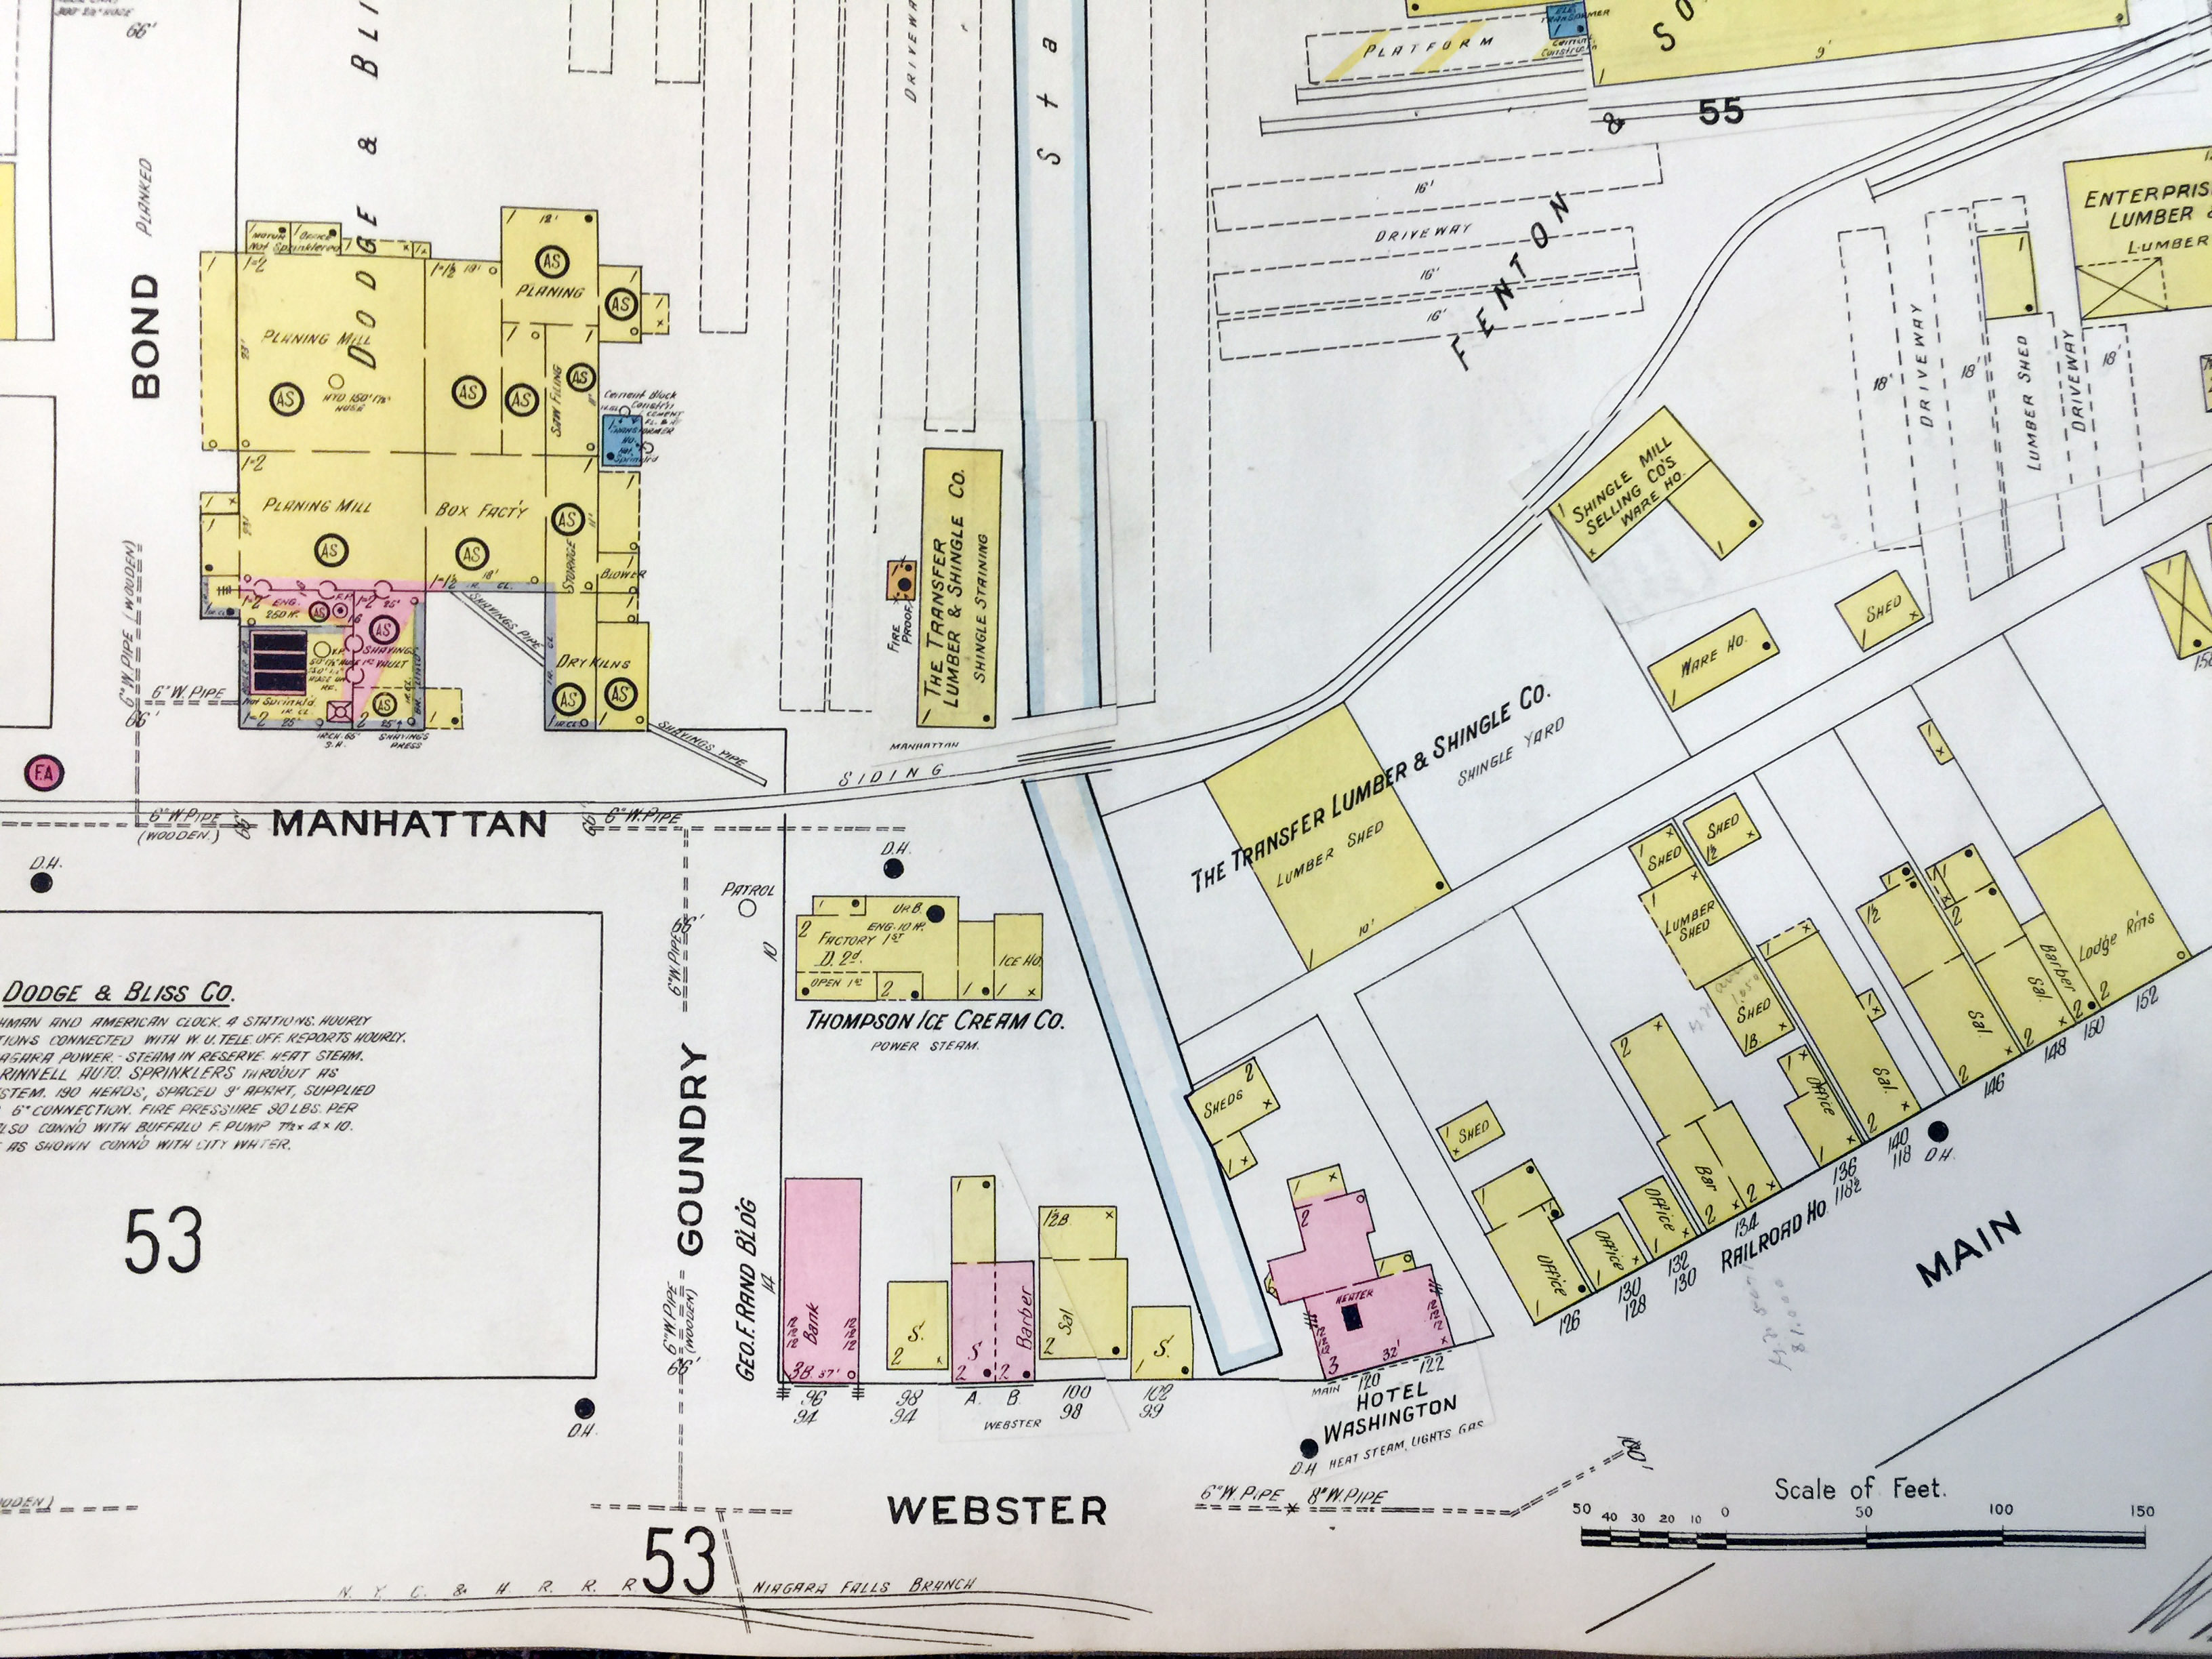 Dodge and Bliss, Hotel Washington, Webster and Main north of Goundry, map detail (Sanborn Map Company, 1910, 1913).jpg